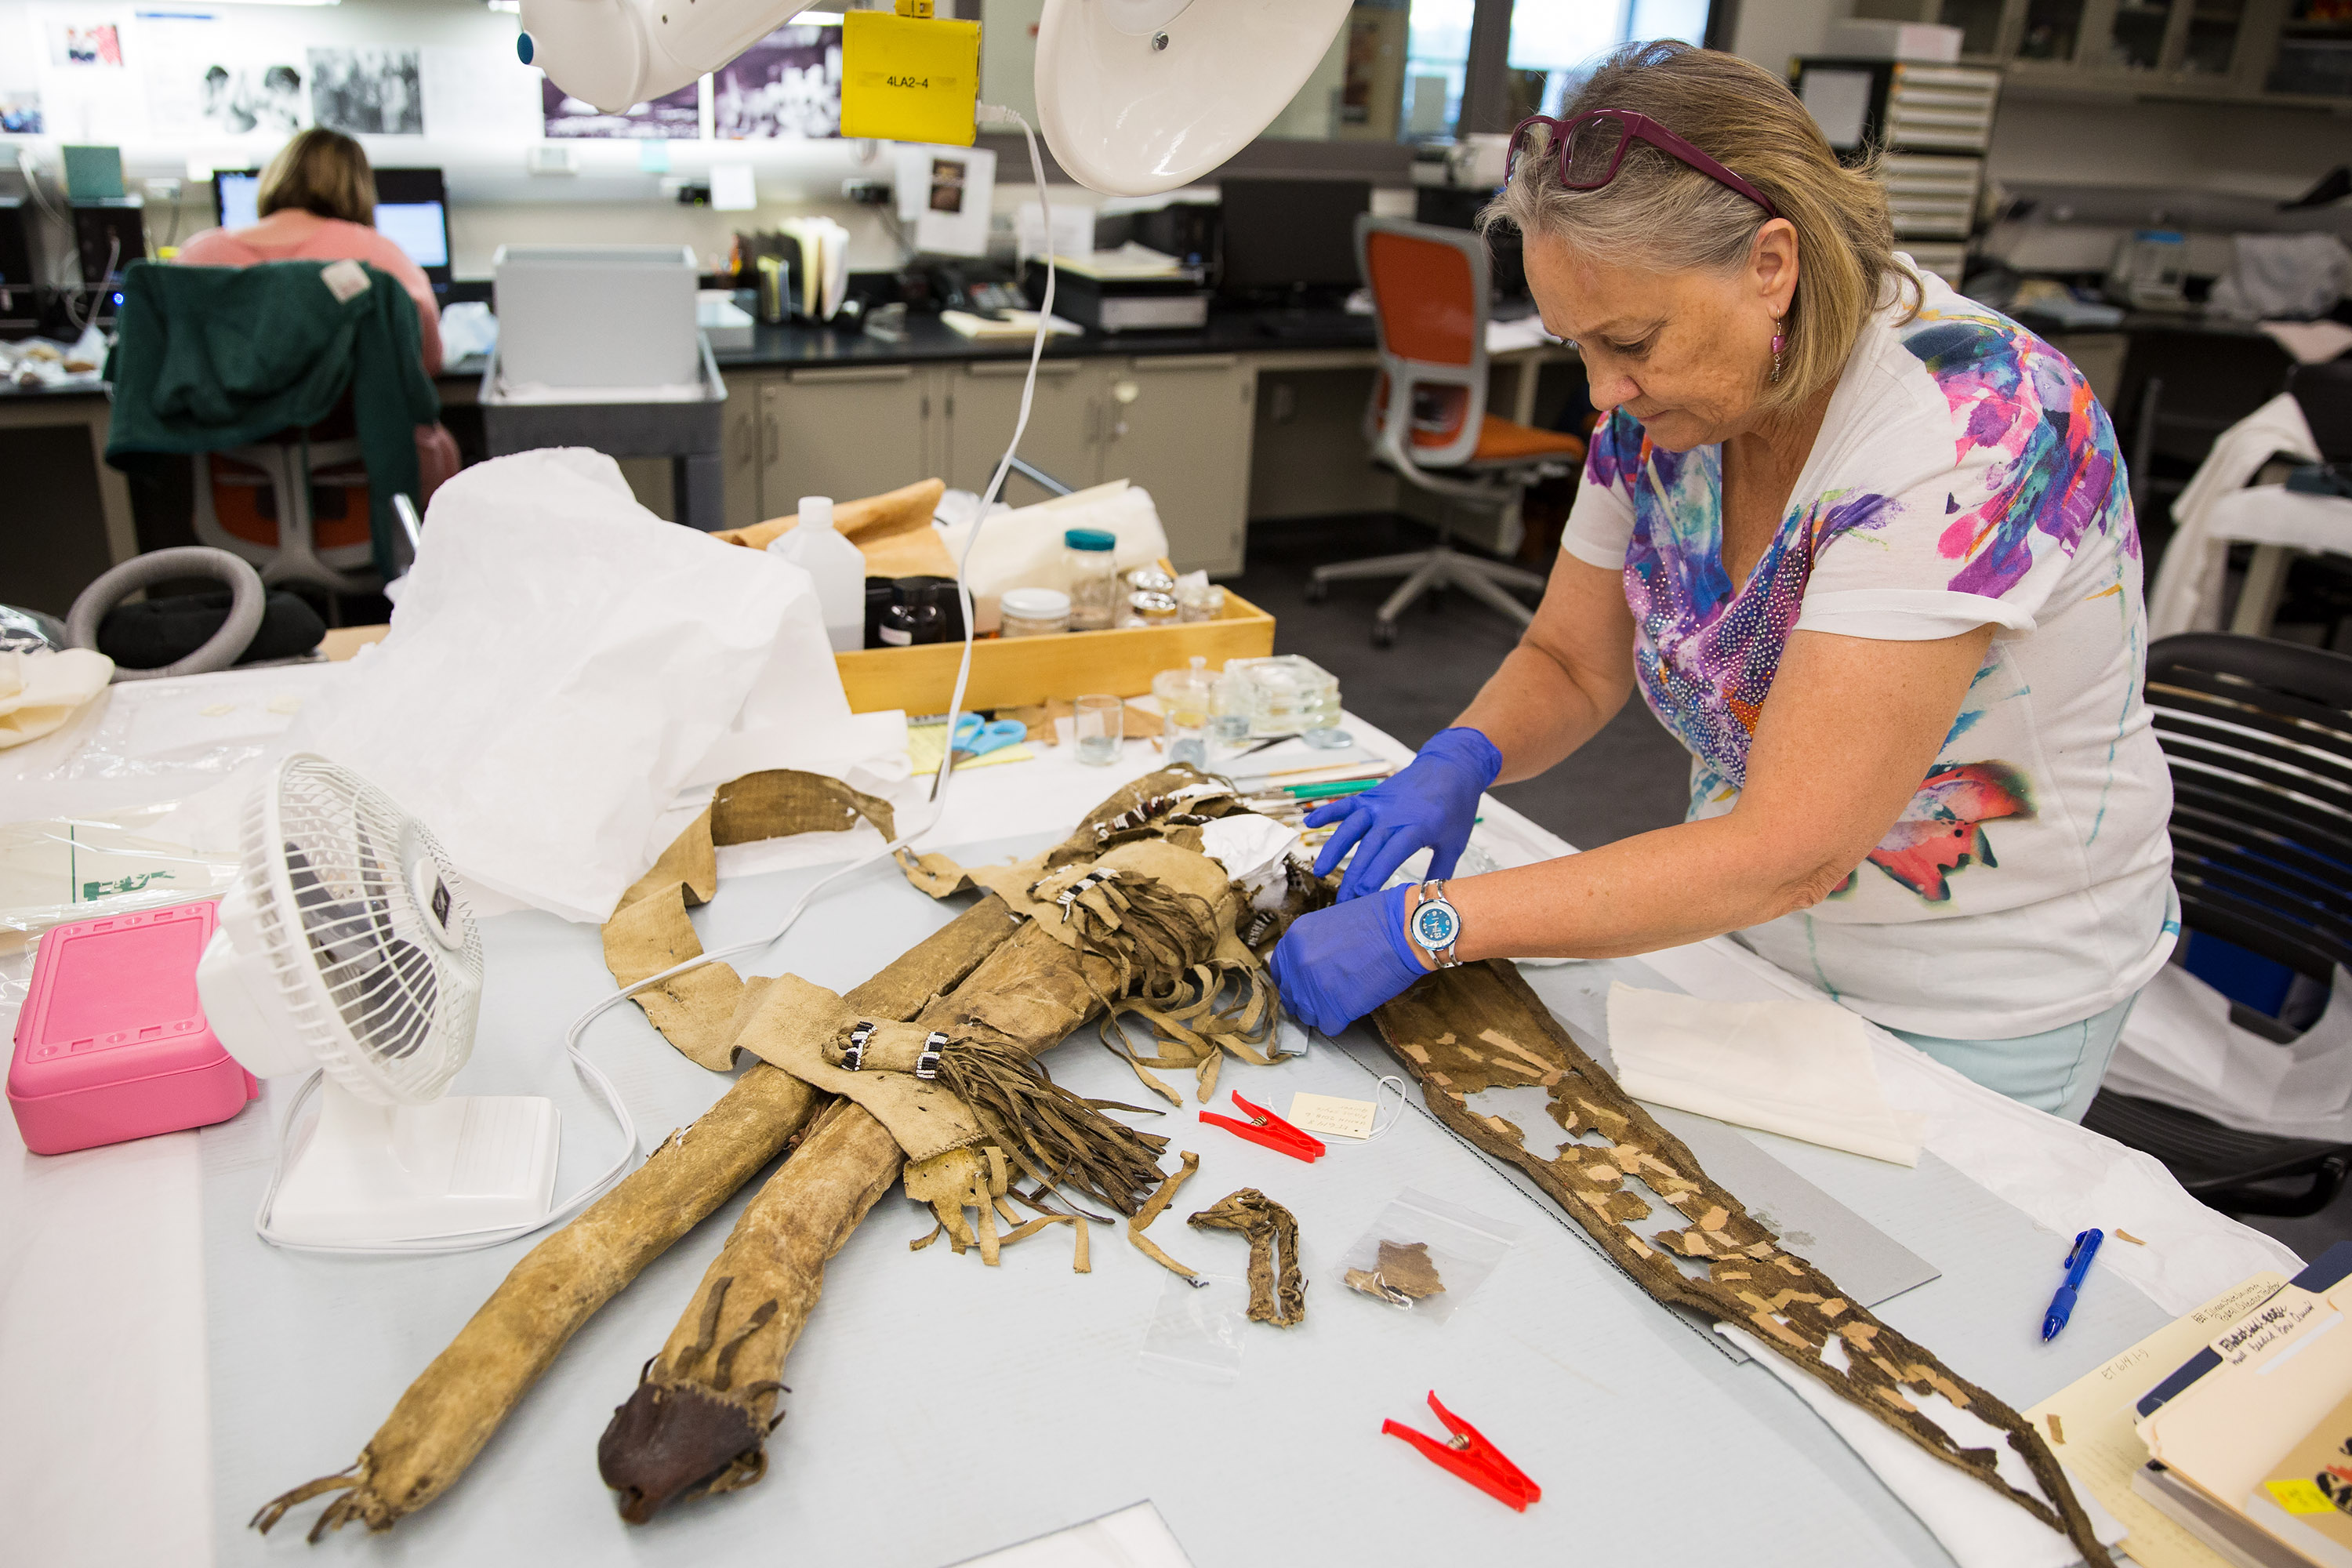 NHMU staff working to restore Otter skin quiver collected by explorer John Wesley Powell on his expeditions along the Colorado River.